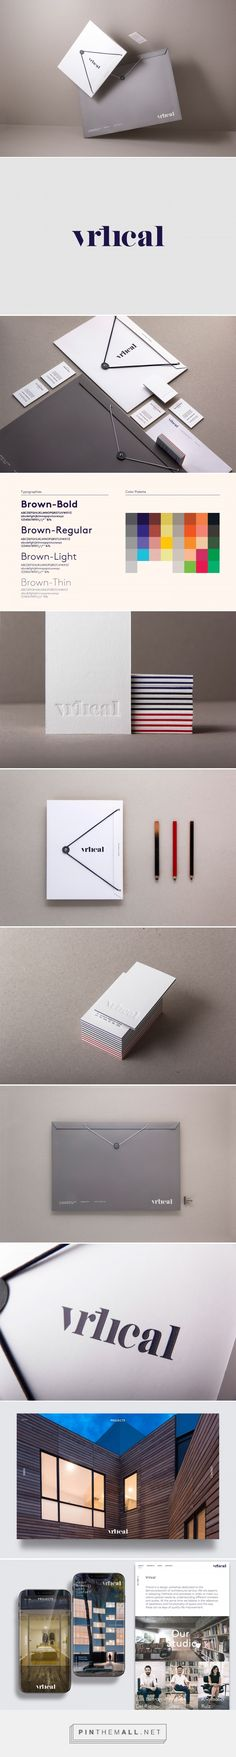 Vrtical on Behance... - a grouped images picture - Pin Them All